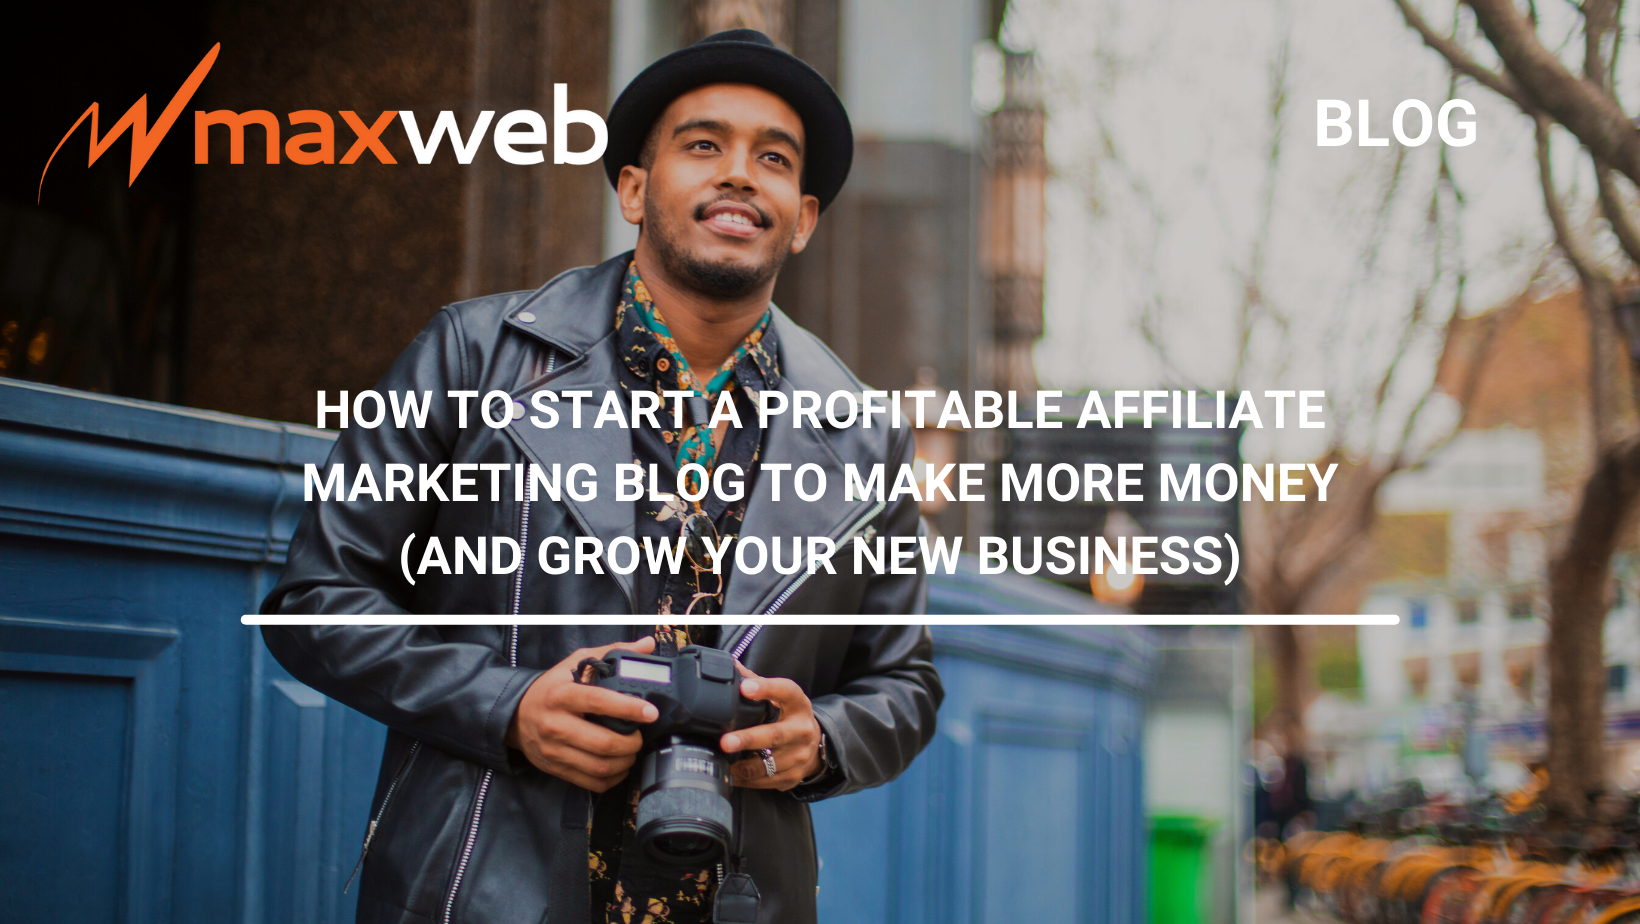 How to Start A Profitable Affiliate Marketing Blog to Make More Money (And Grow Your New Business)